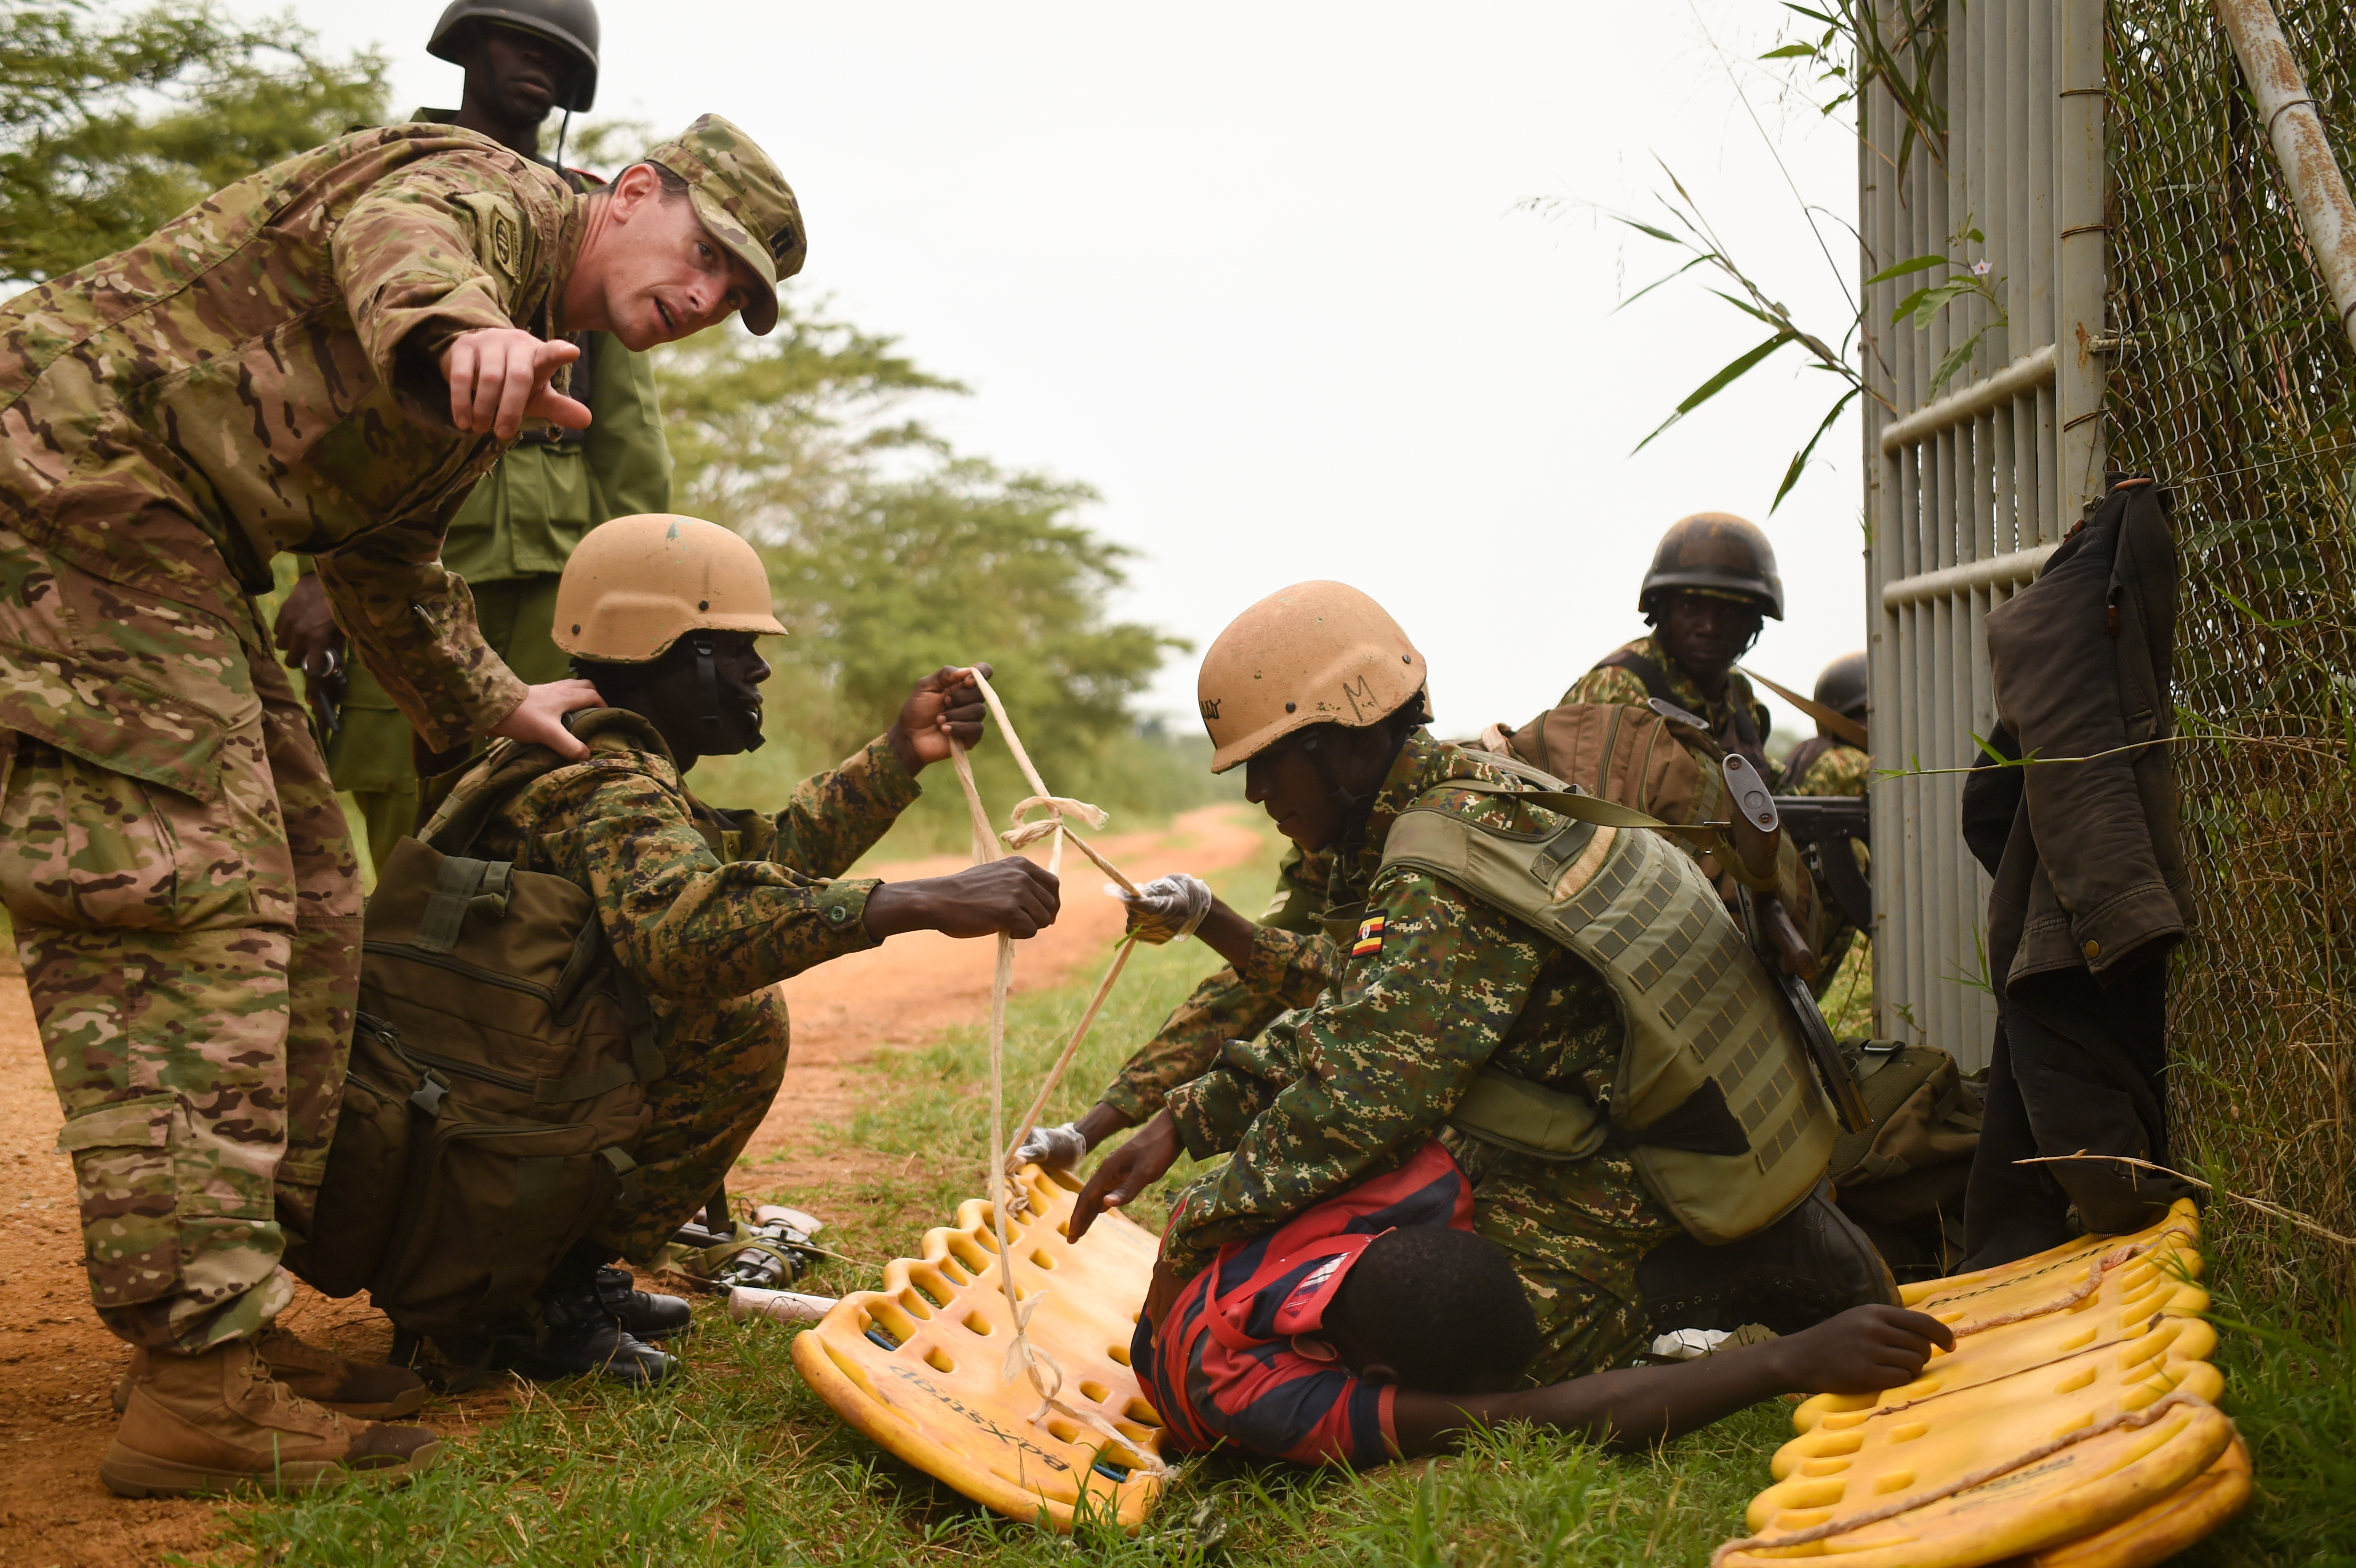 U.S. Army Capt. Brandon Resor with Combined Joint Task Force-Horn of Africa's (CJTF-HOA), 418th Civil Affairs Battalion, directs Uganda People's Defense Force (UPDF) soldiers assigned to Ugandan Battle Group 22, as they prepare a simulated casualty for transport during a medical exercise at Camp Singo, Uganda, March 3, 2017. CJTF-HOA members assisted UPDF soldiers assigned to Ugandan Battle Group 22 to employ skills acquired from their predeployment training such as nine-line medical evacuation, combat lifesaving techniques and casualty extraction. (U.S. Air National Guard photo by Staff Sgt. Penny Snoozy)